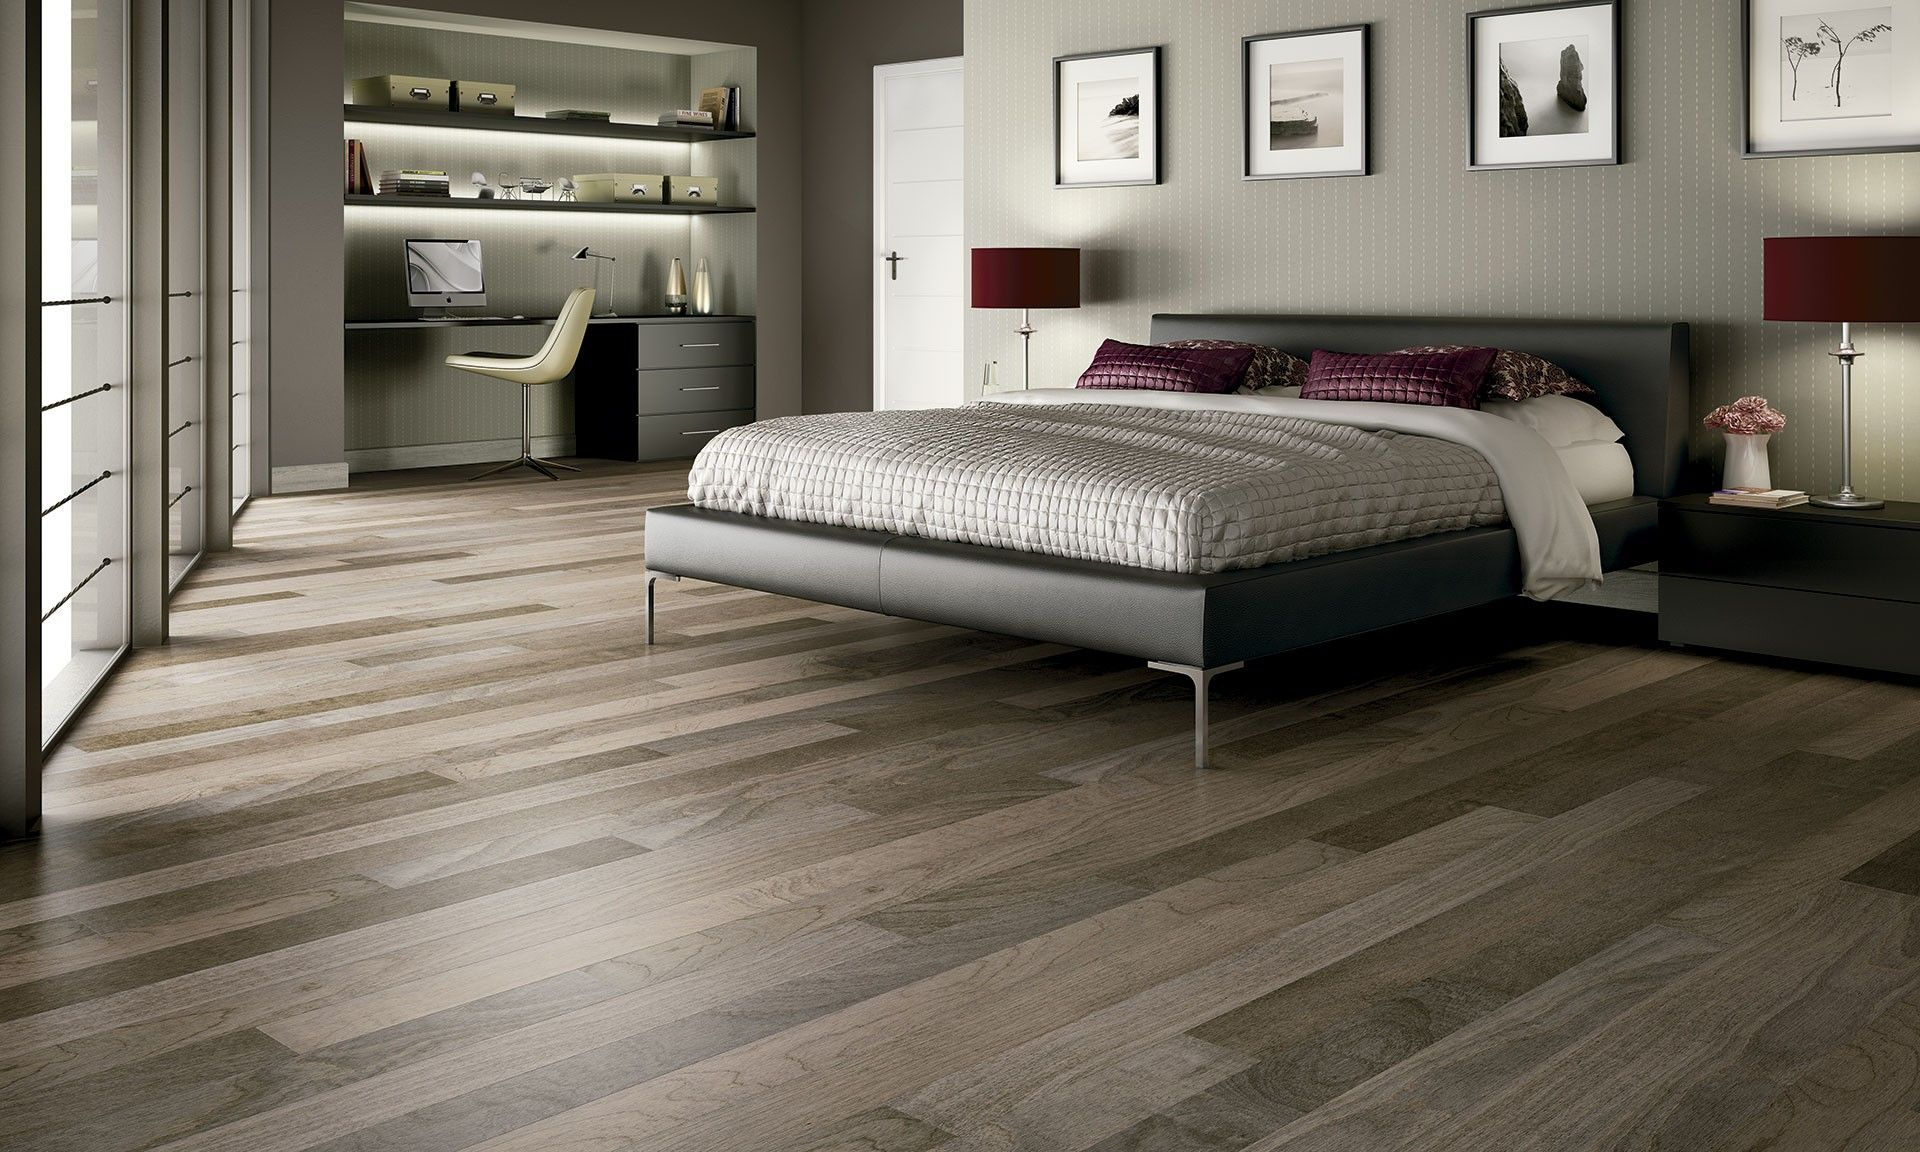 Engineered Wood Flooring 11 Engineered Wood Floors Bedroom Flooring Bamboo Laminate Flooring